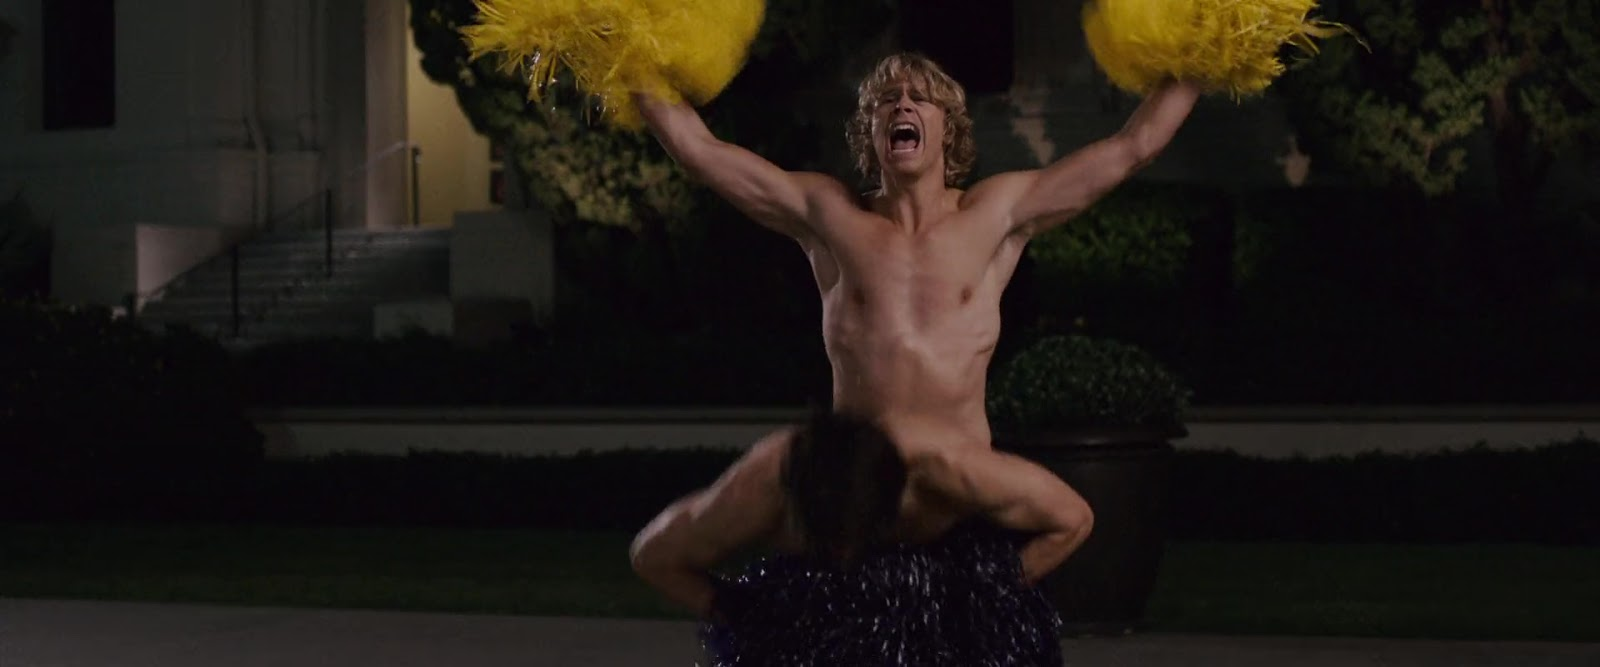 Eric christian olsen nude photo, sexy scene